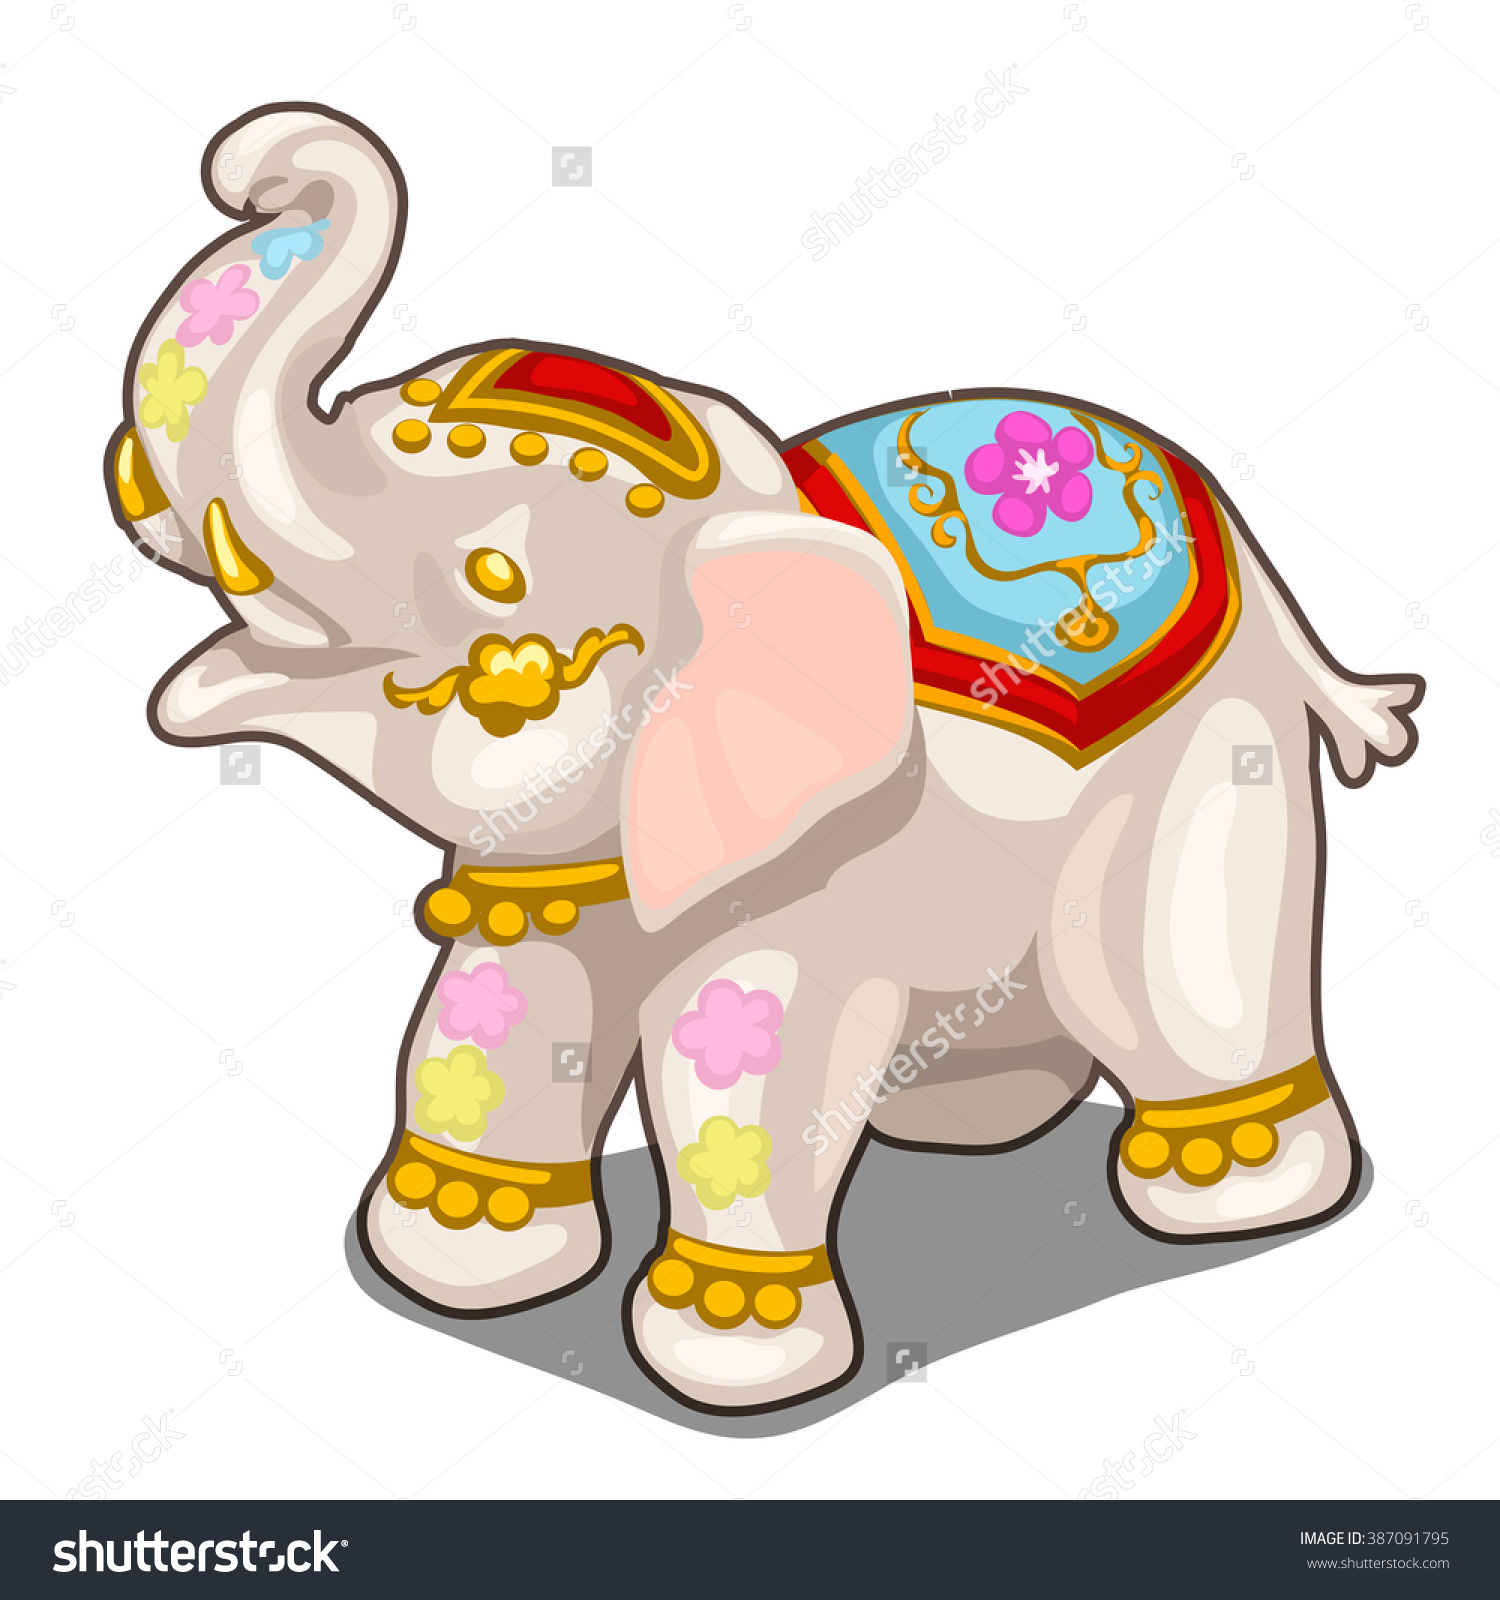 Porcelain Figurine In The Form Of An Indian Elephant. Vector.